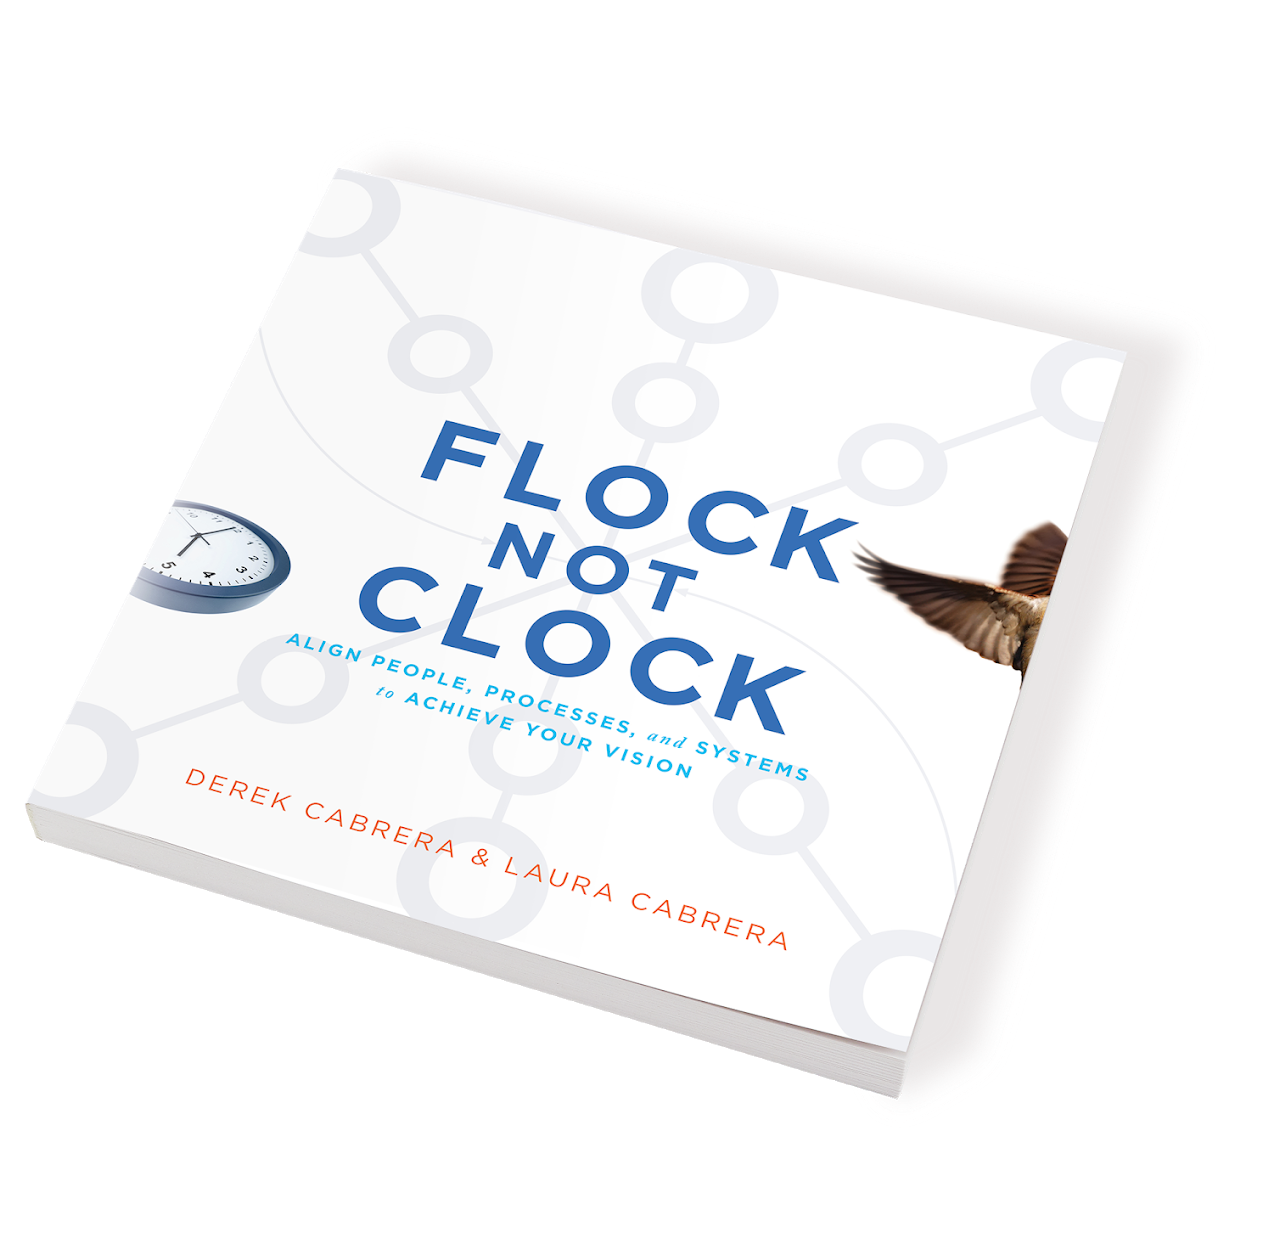 Flock Not Clock